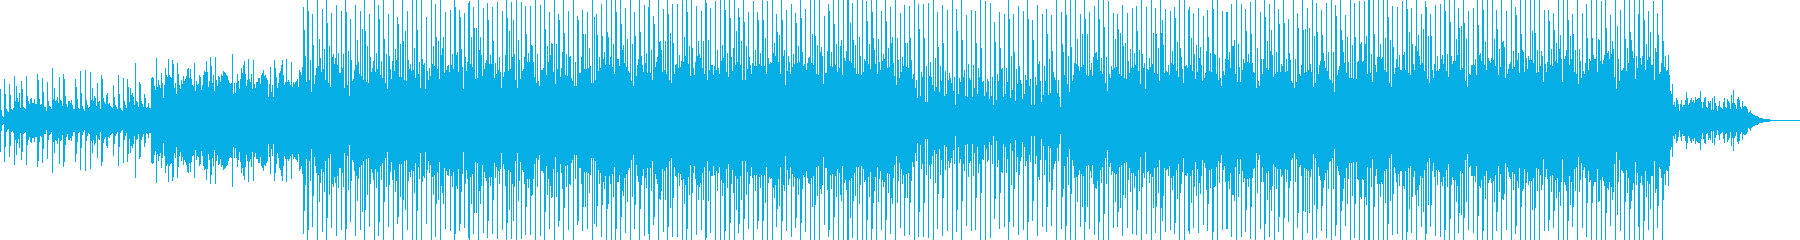 EDM club dance music-27's reproduced waveform